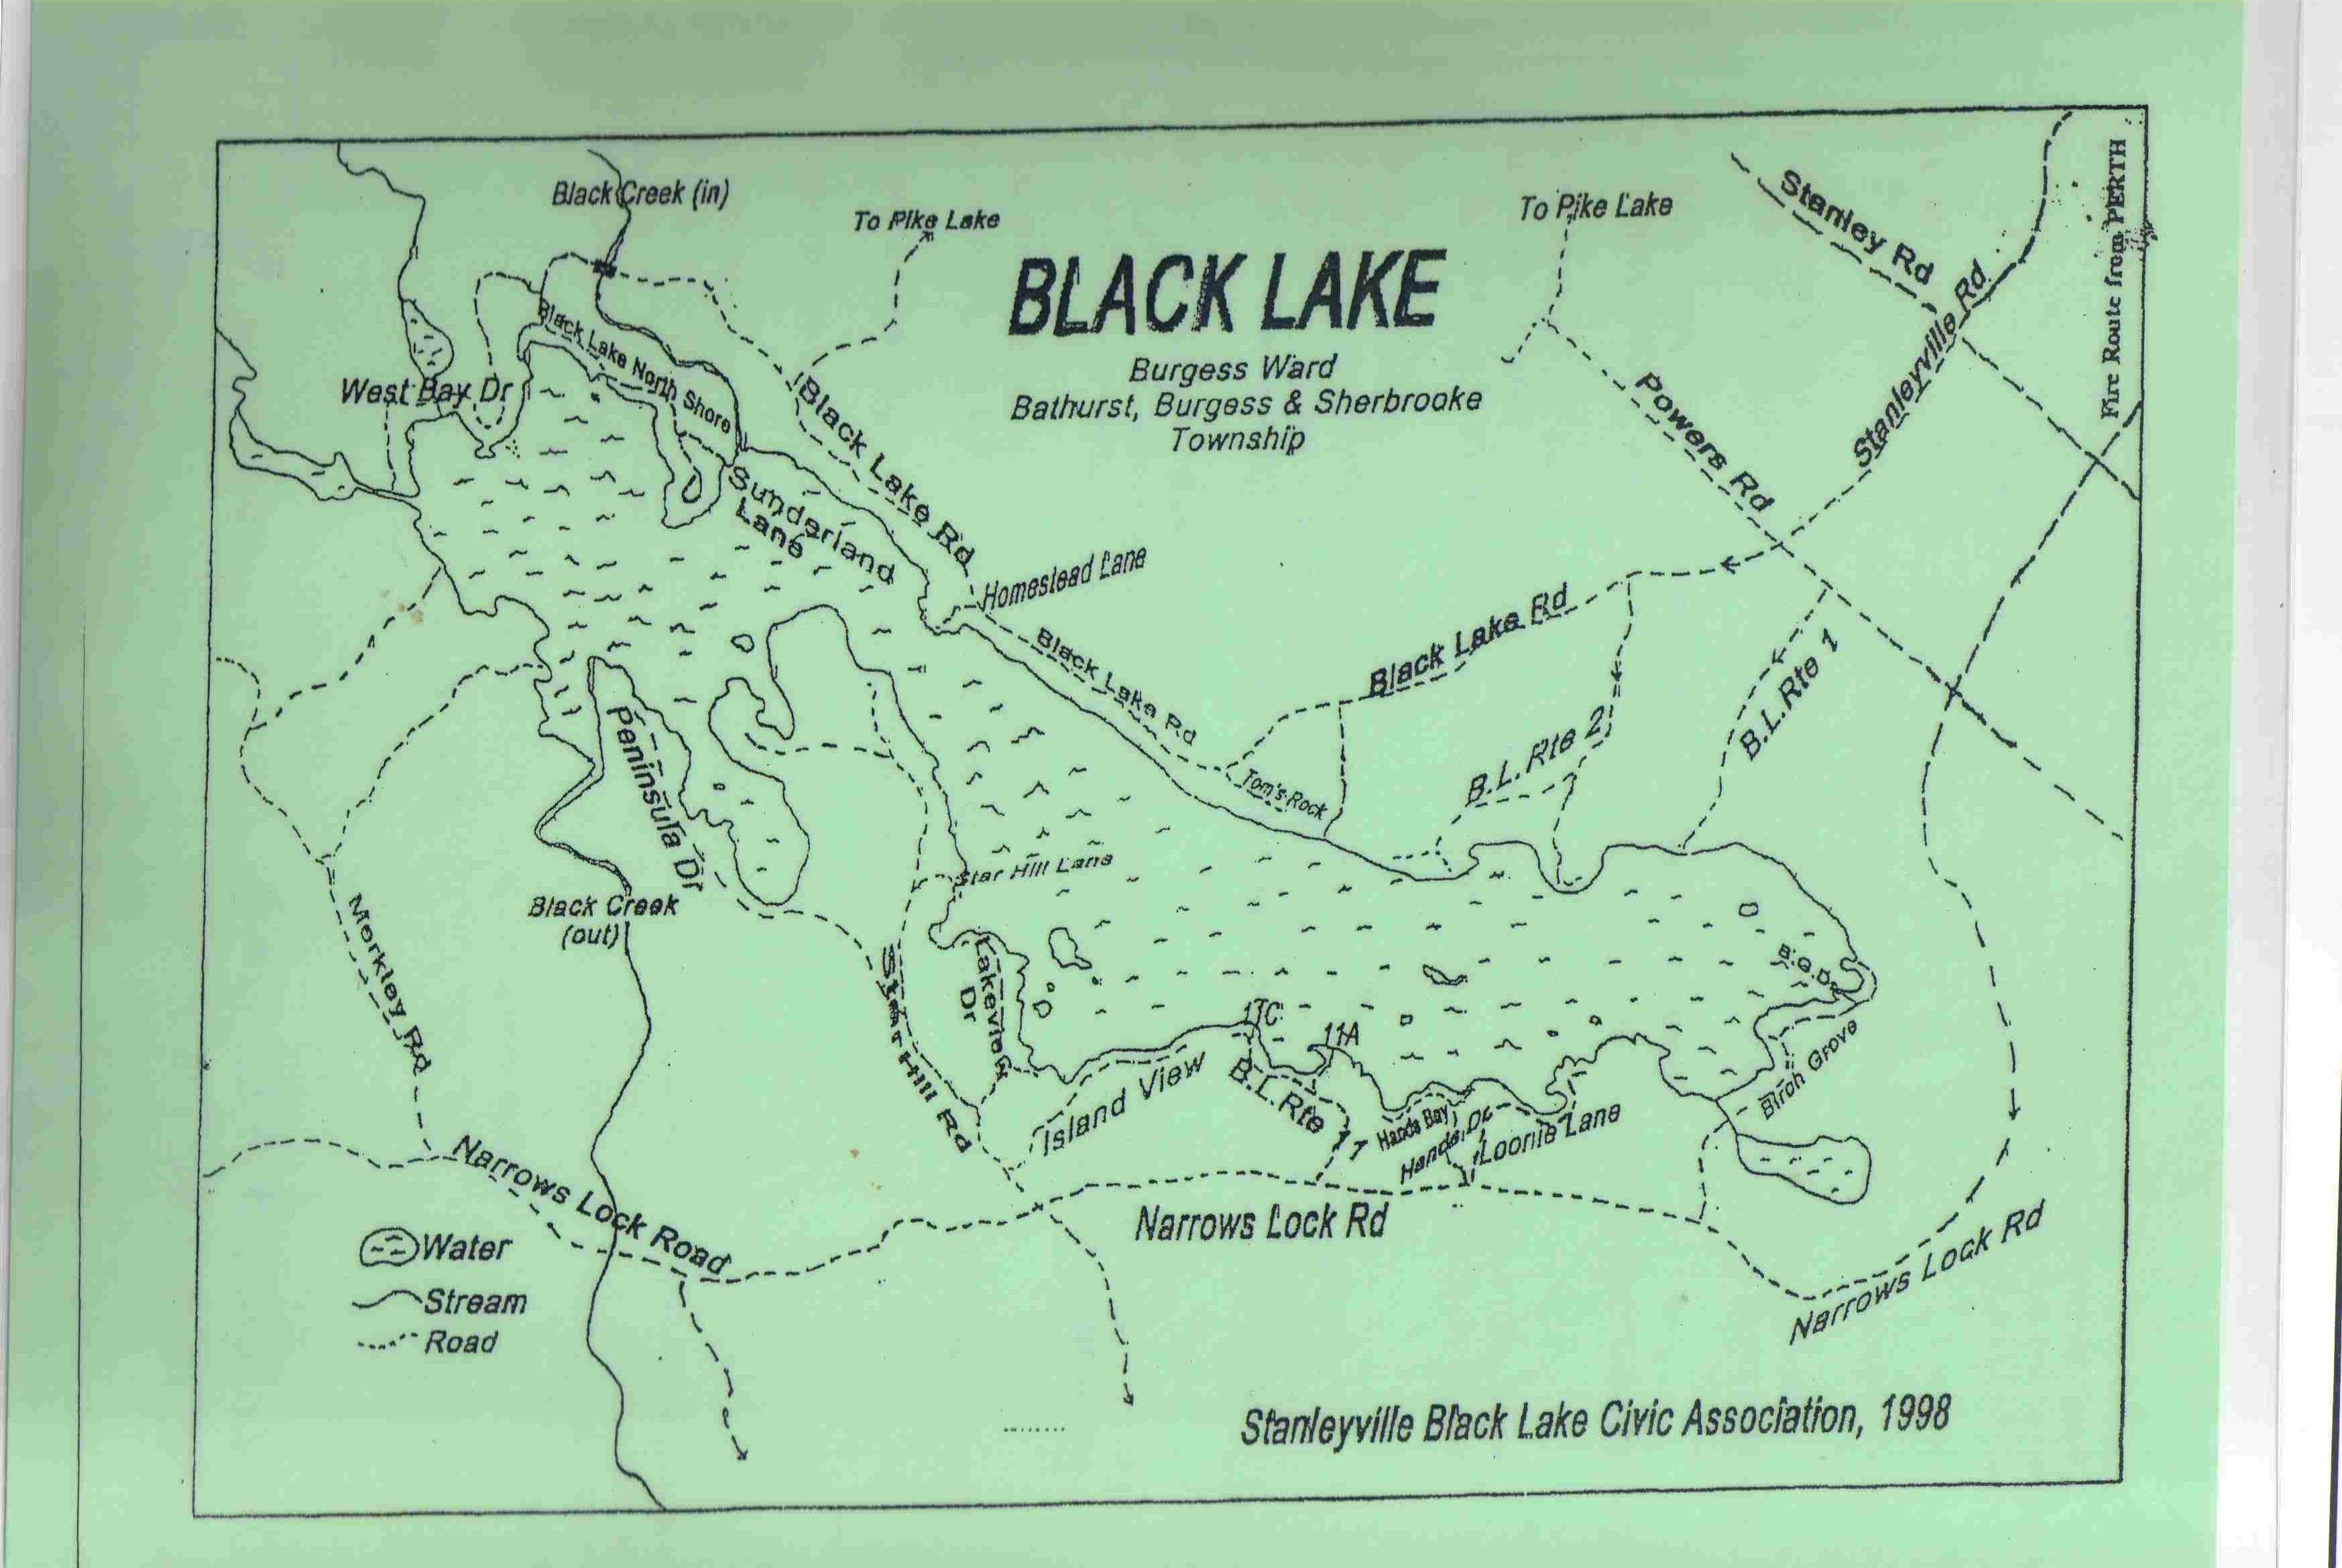 Map of Black Lake